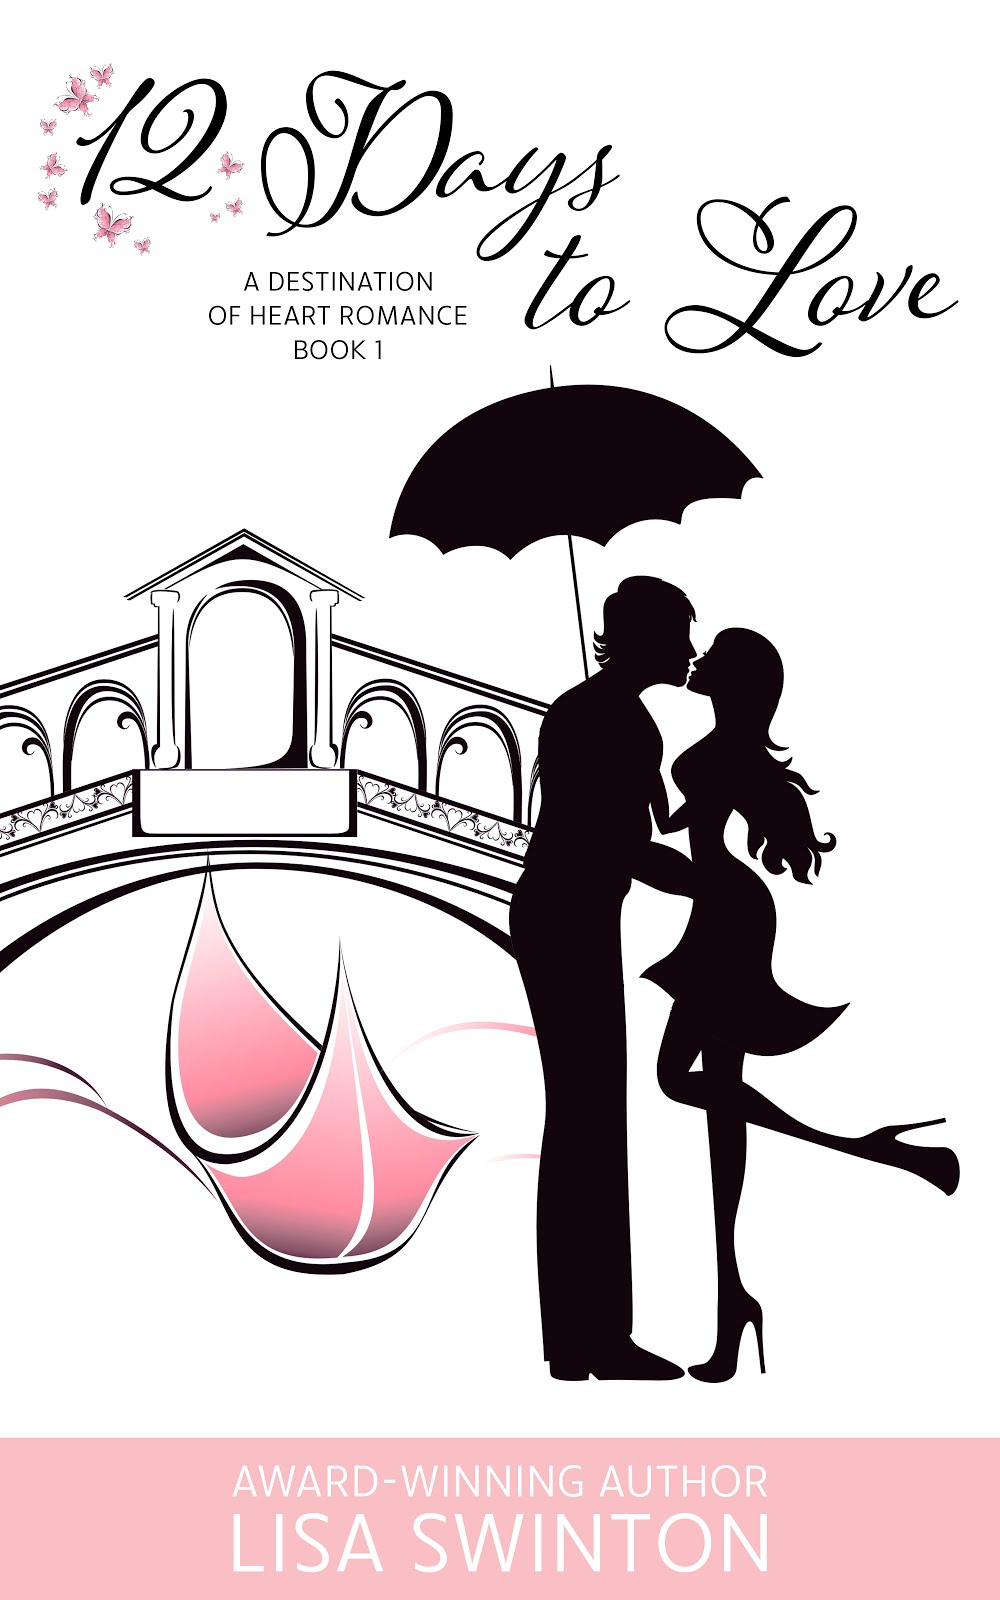 Purchase 12 Days to Love (A Destination of Heart Romance Book 1)